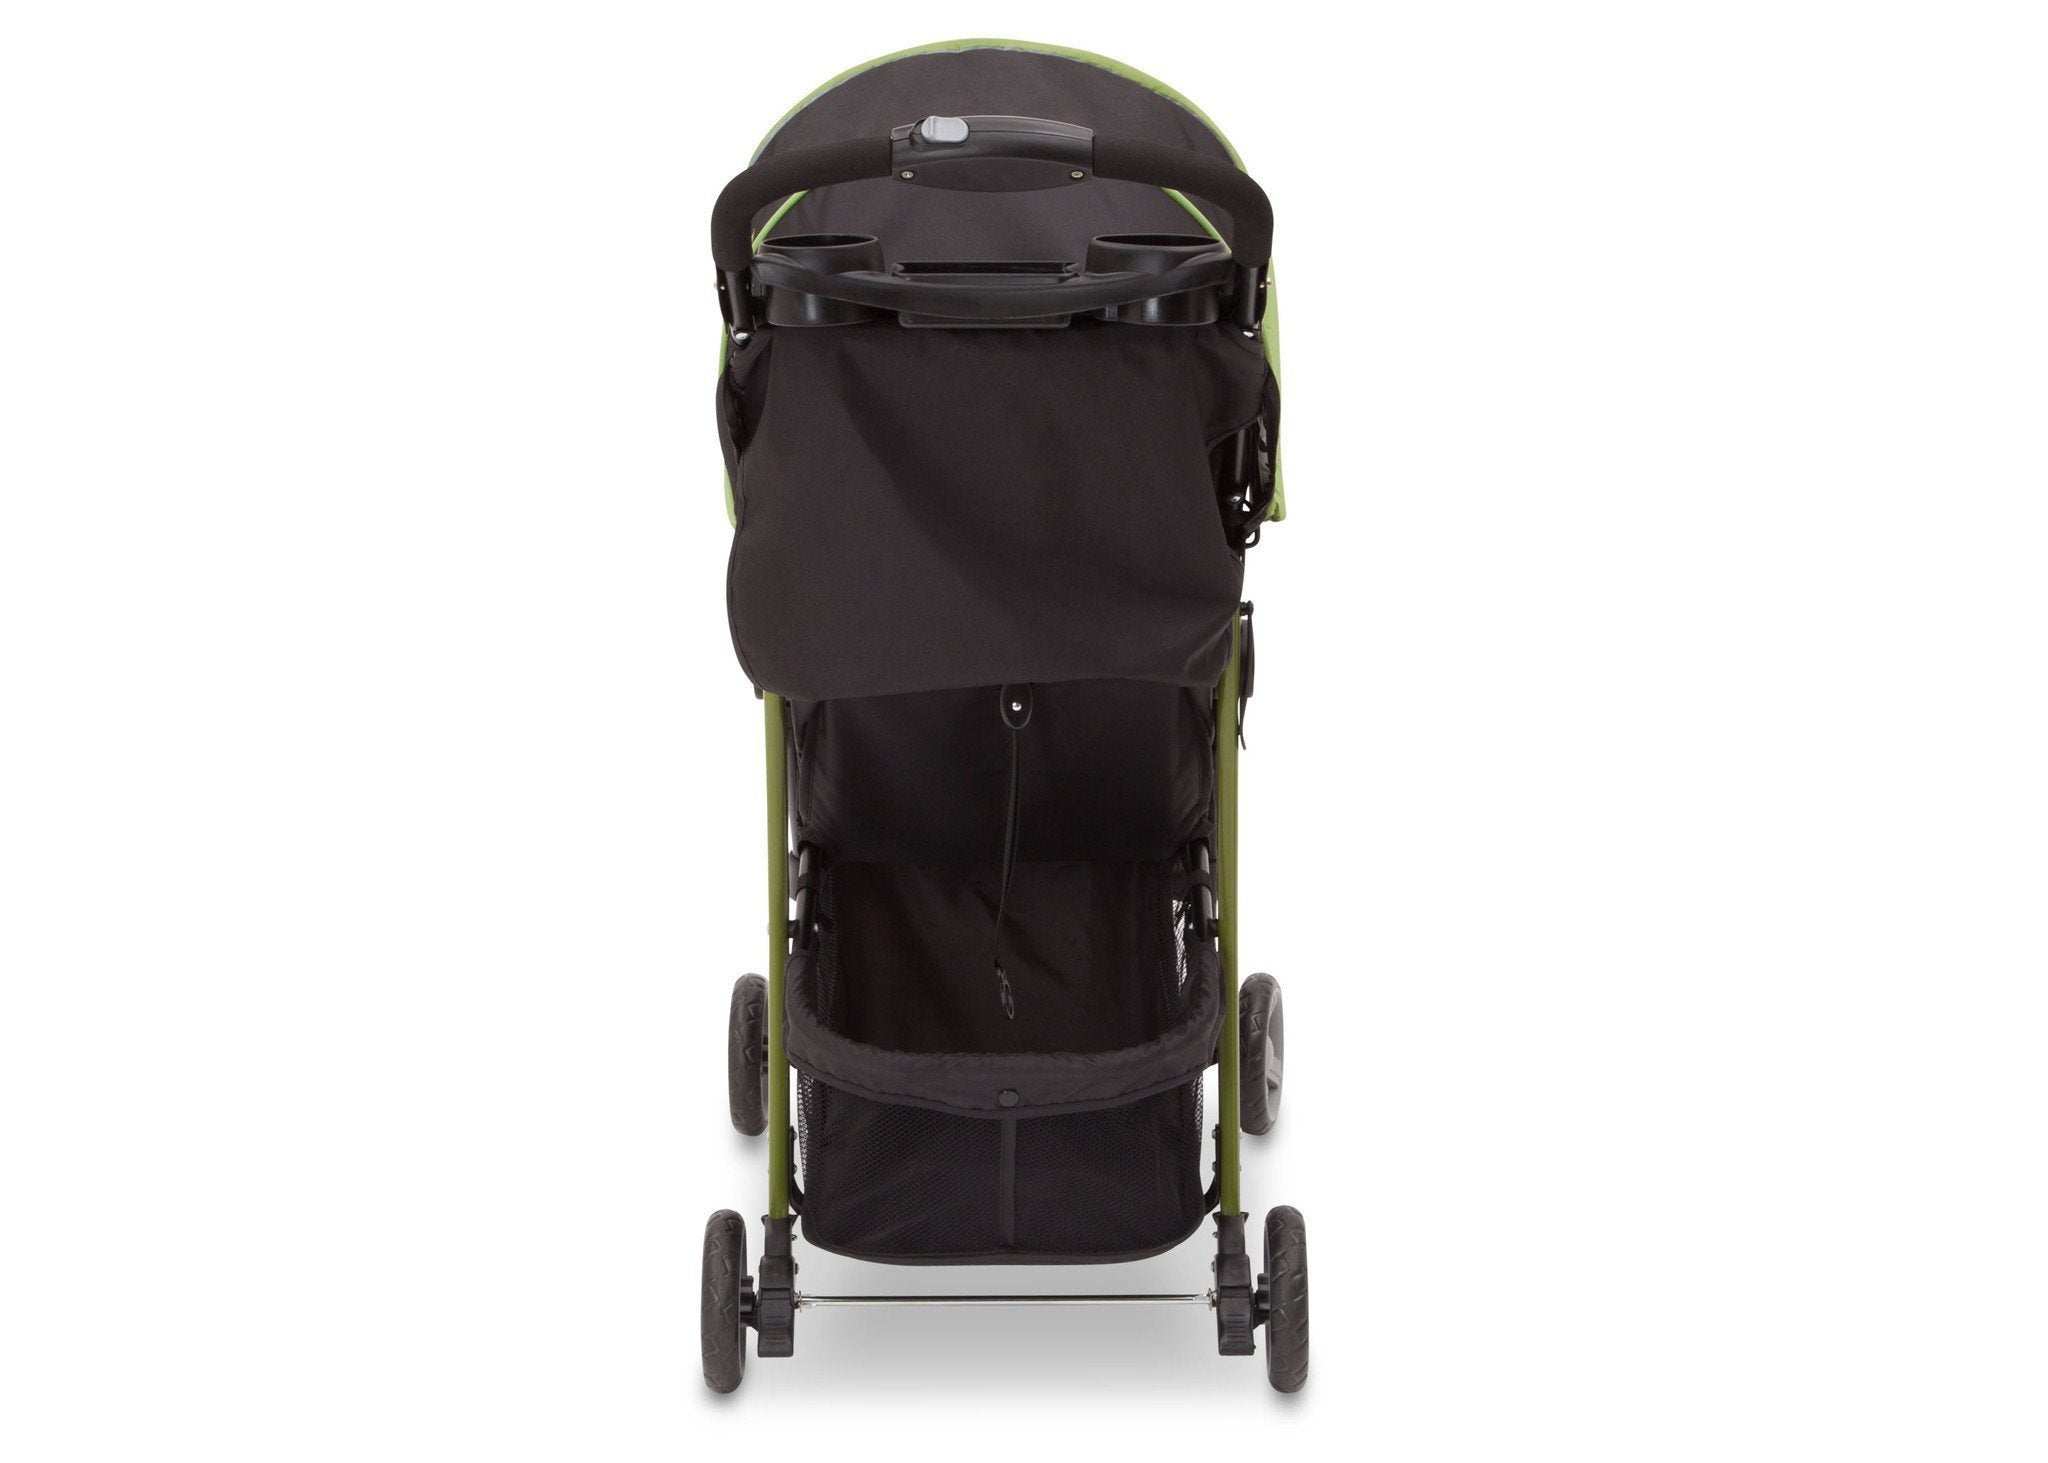 Children Trekking (344) J is for Jeep Brand Metro Stroller Back View c4c